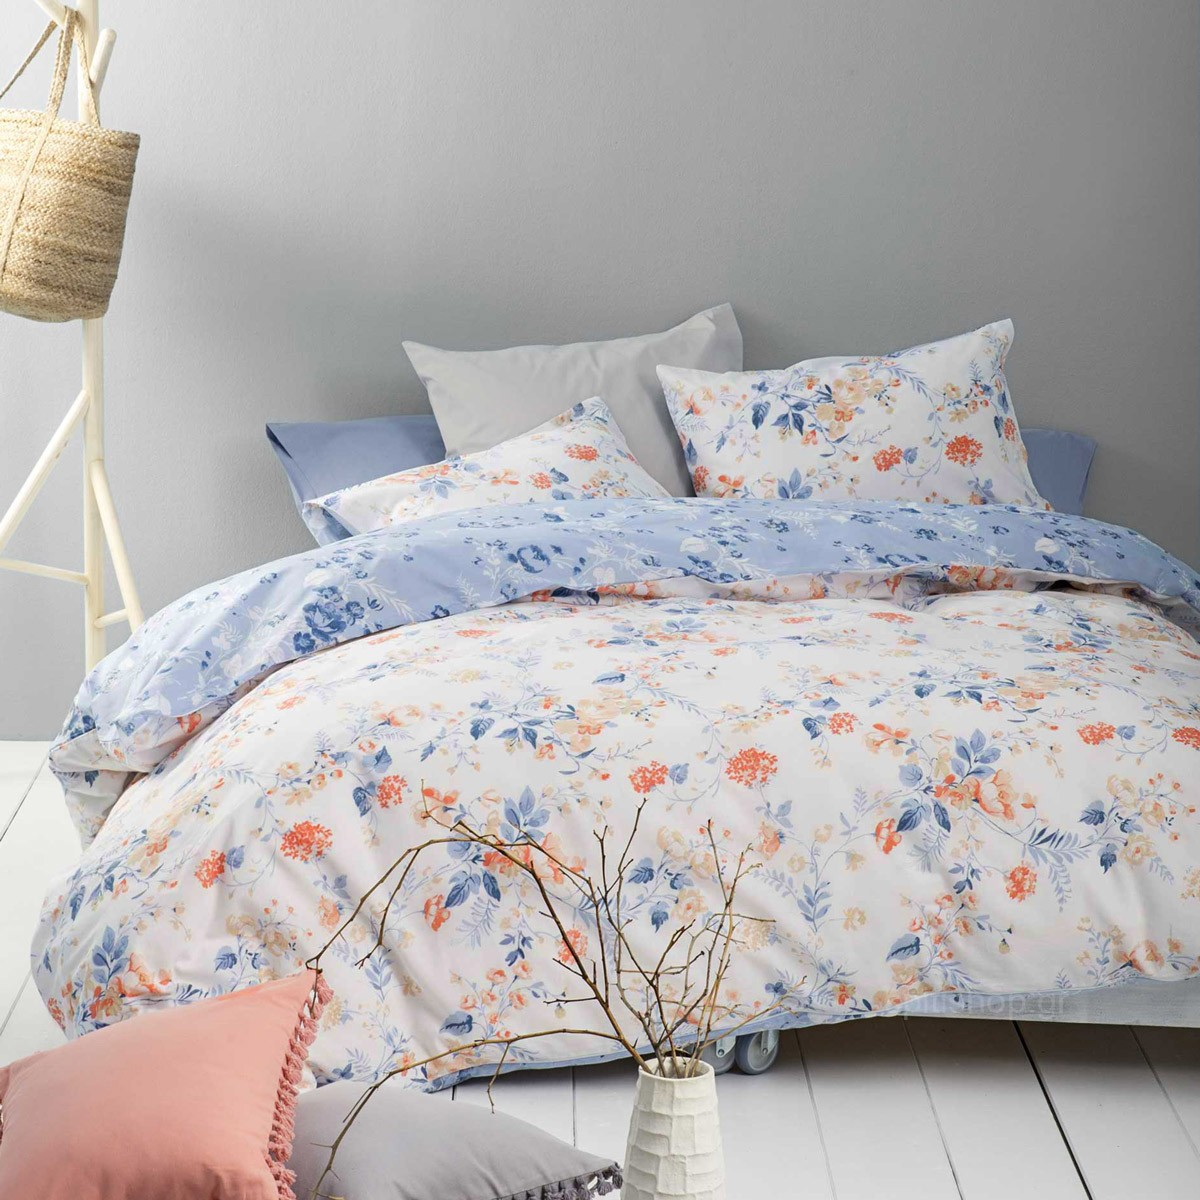 Σεντόνια King Size (Σετ) Nima Bed Linen Floret Blue